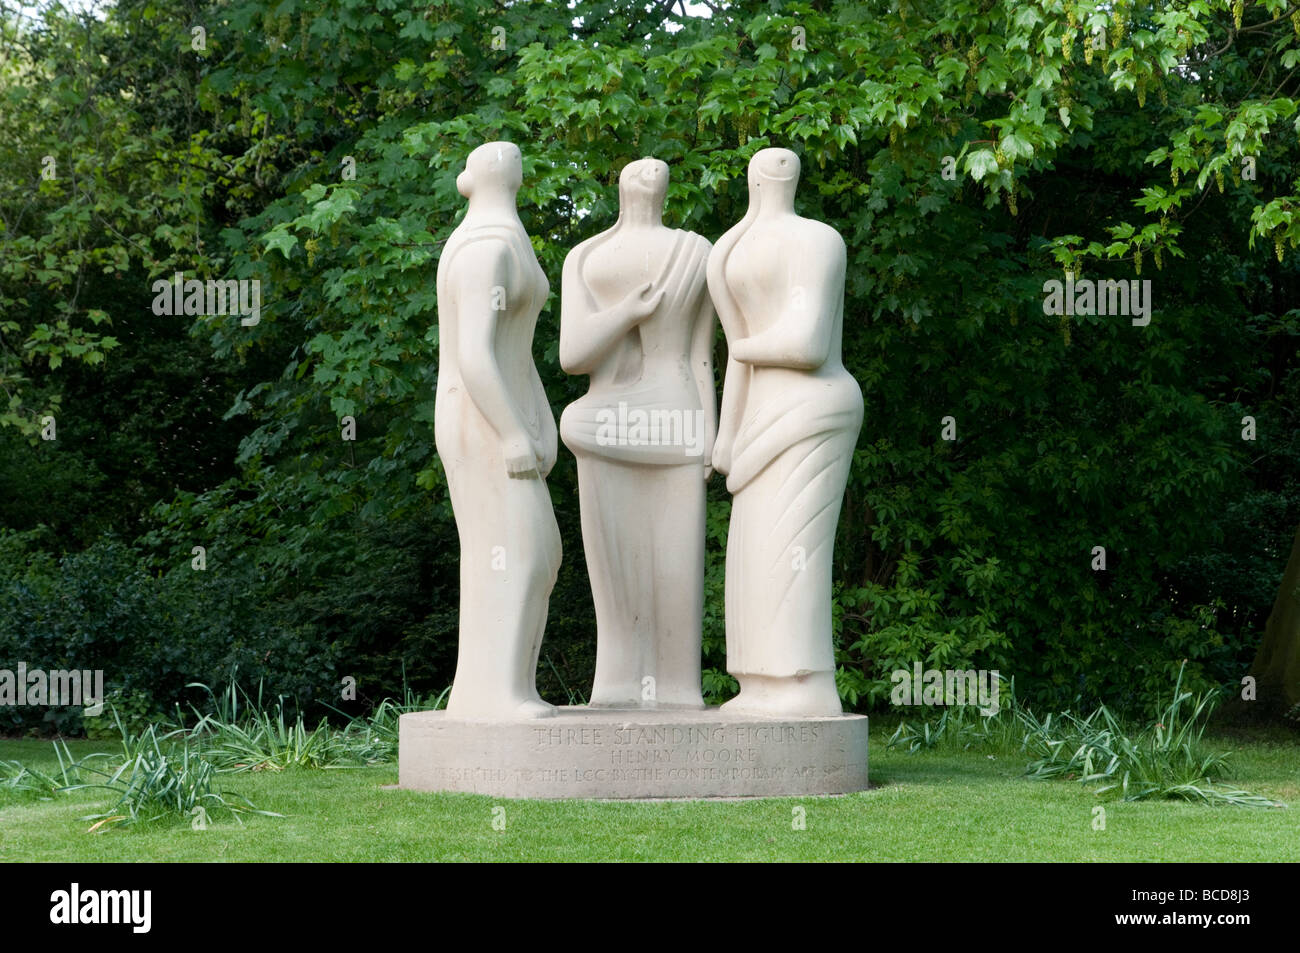 Three Standing Figures sculpture by Henry Moore in Battersea Park, London, England, UK - Stock Image